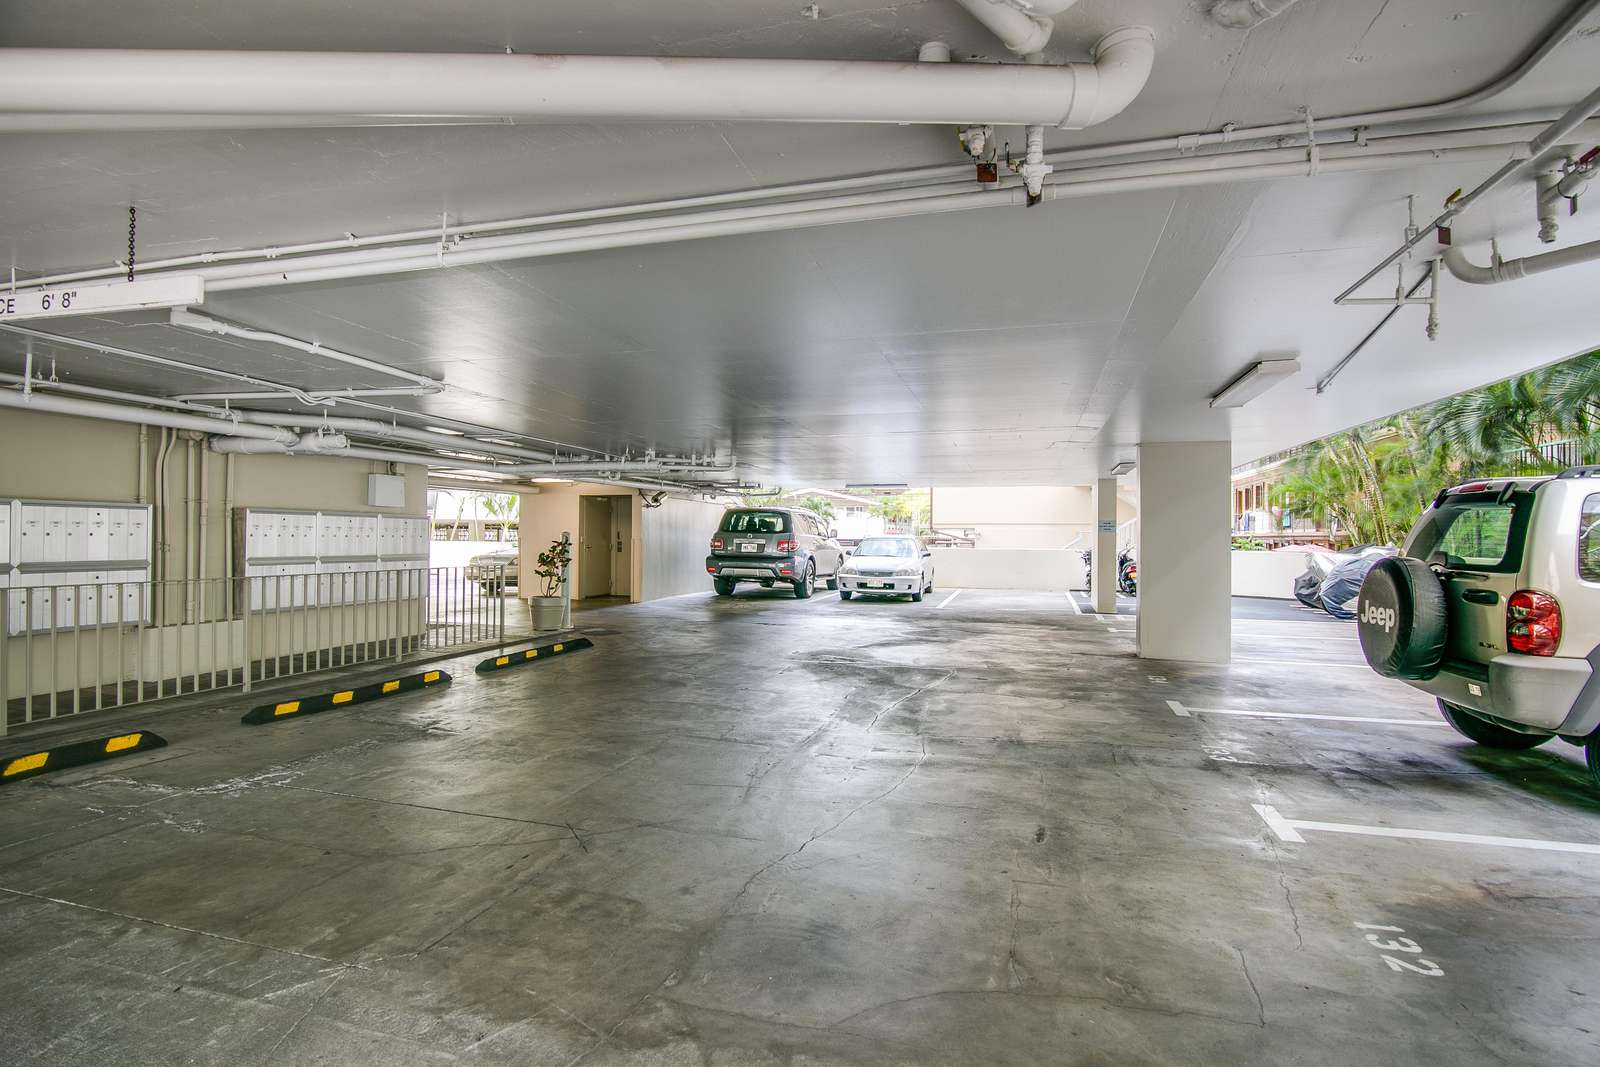 Large secure parking garage on two levels